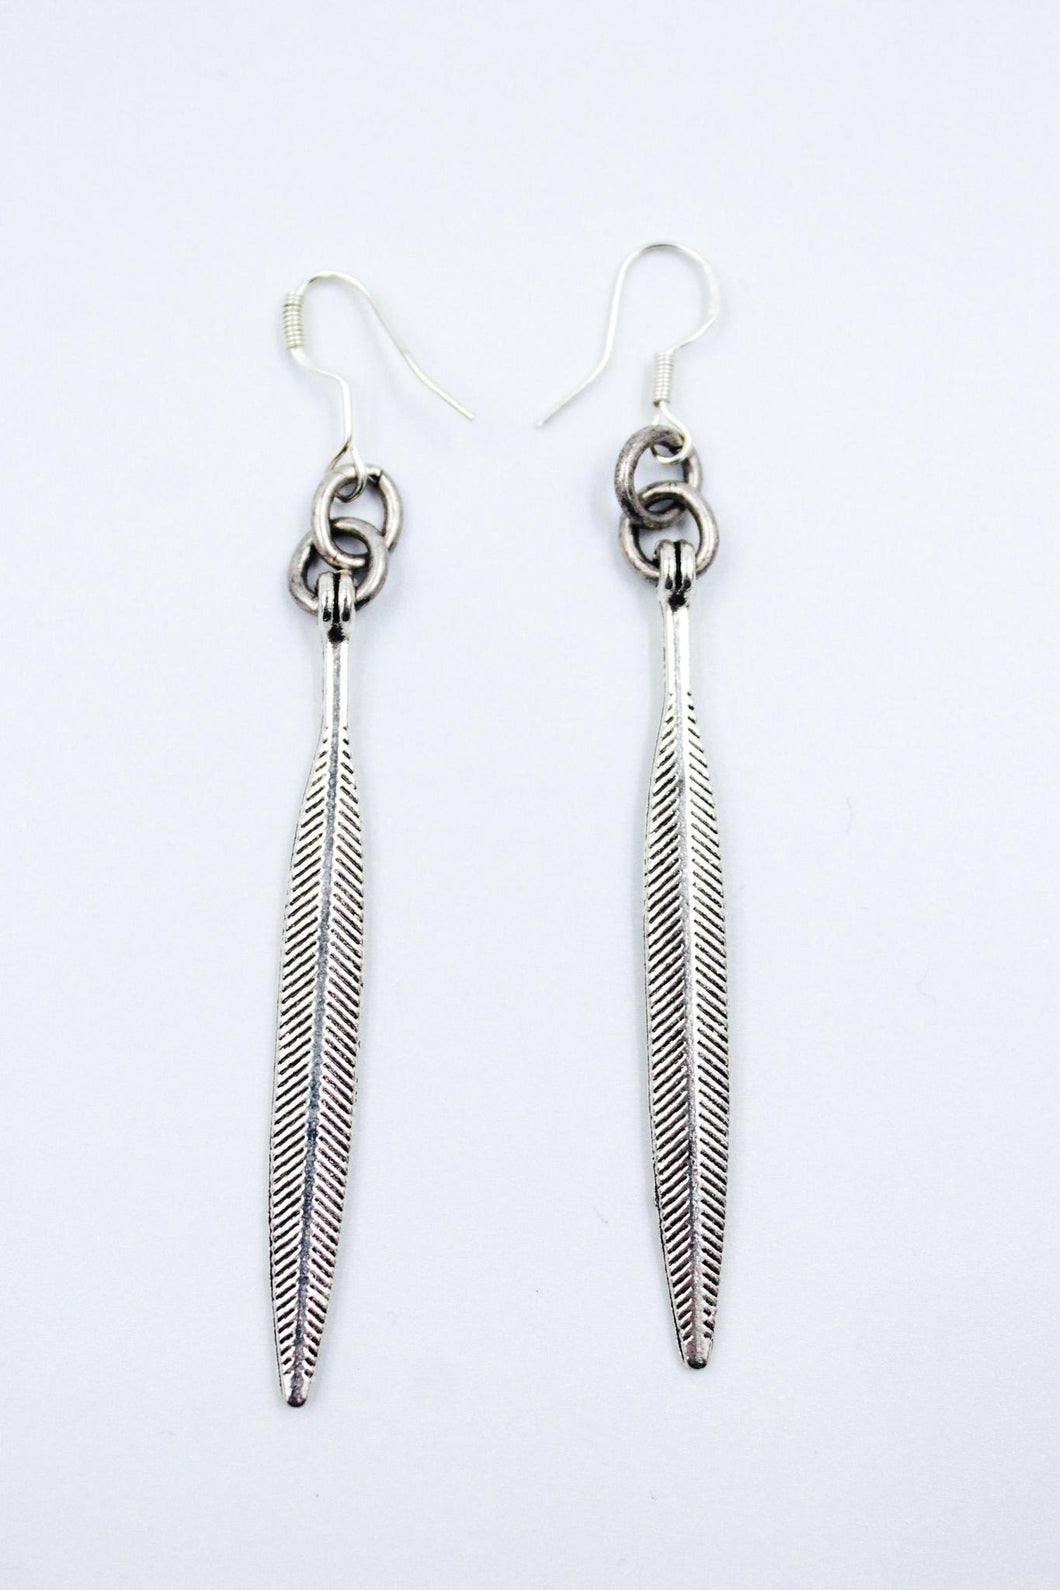 Cherrah Simple Silver Earrings with Tiny Etching Details